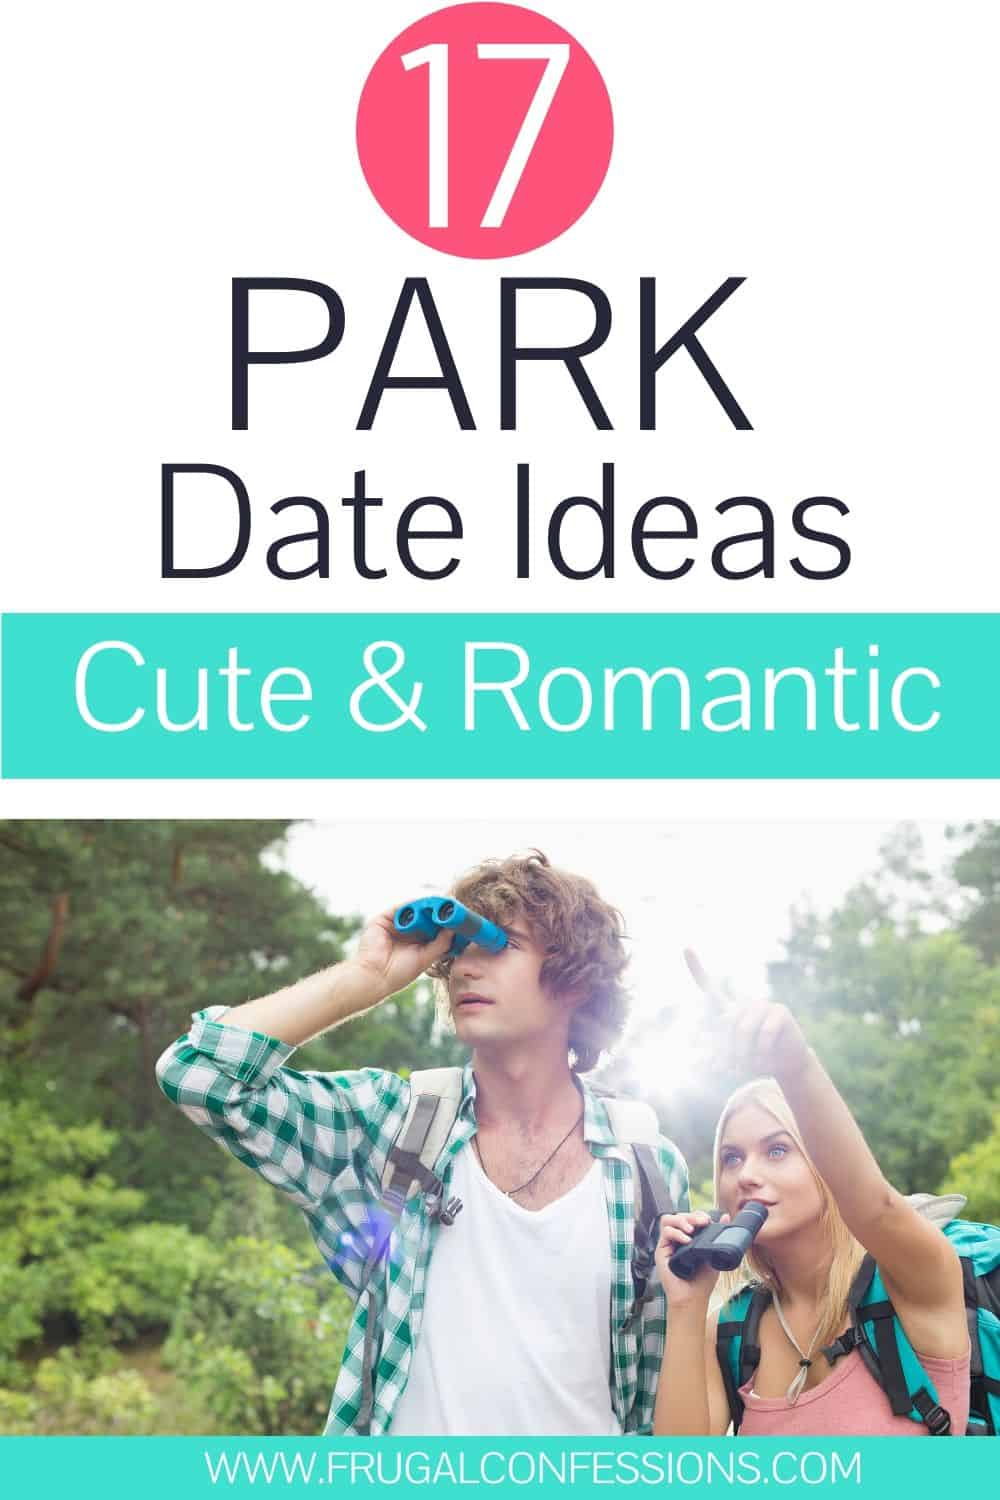 """young couple on an outdoor date with binoculars, text overlay """"17 park date ideas cute and romantic"""""""